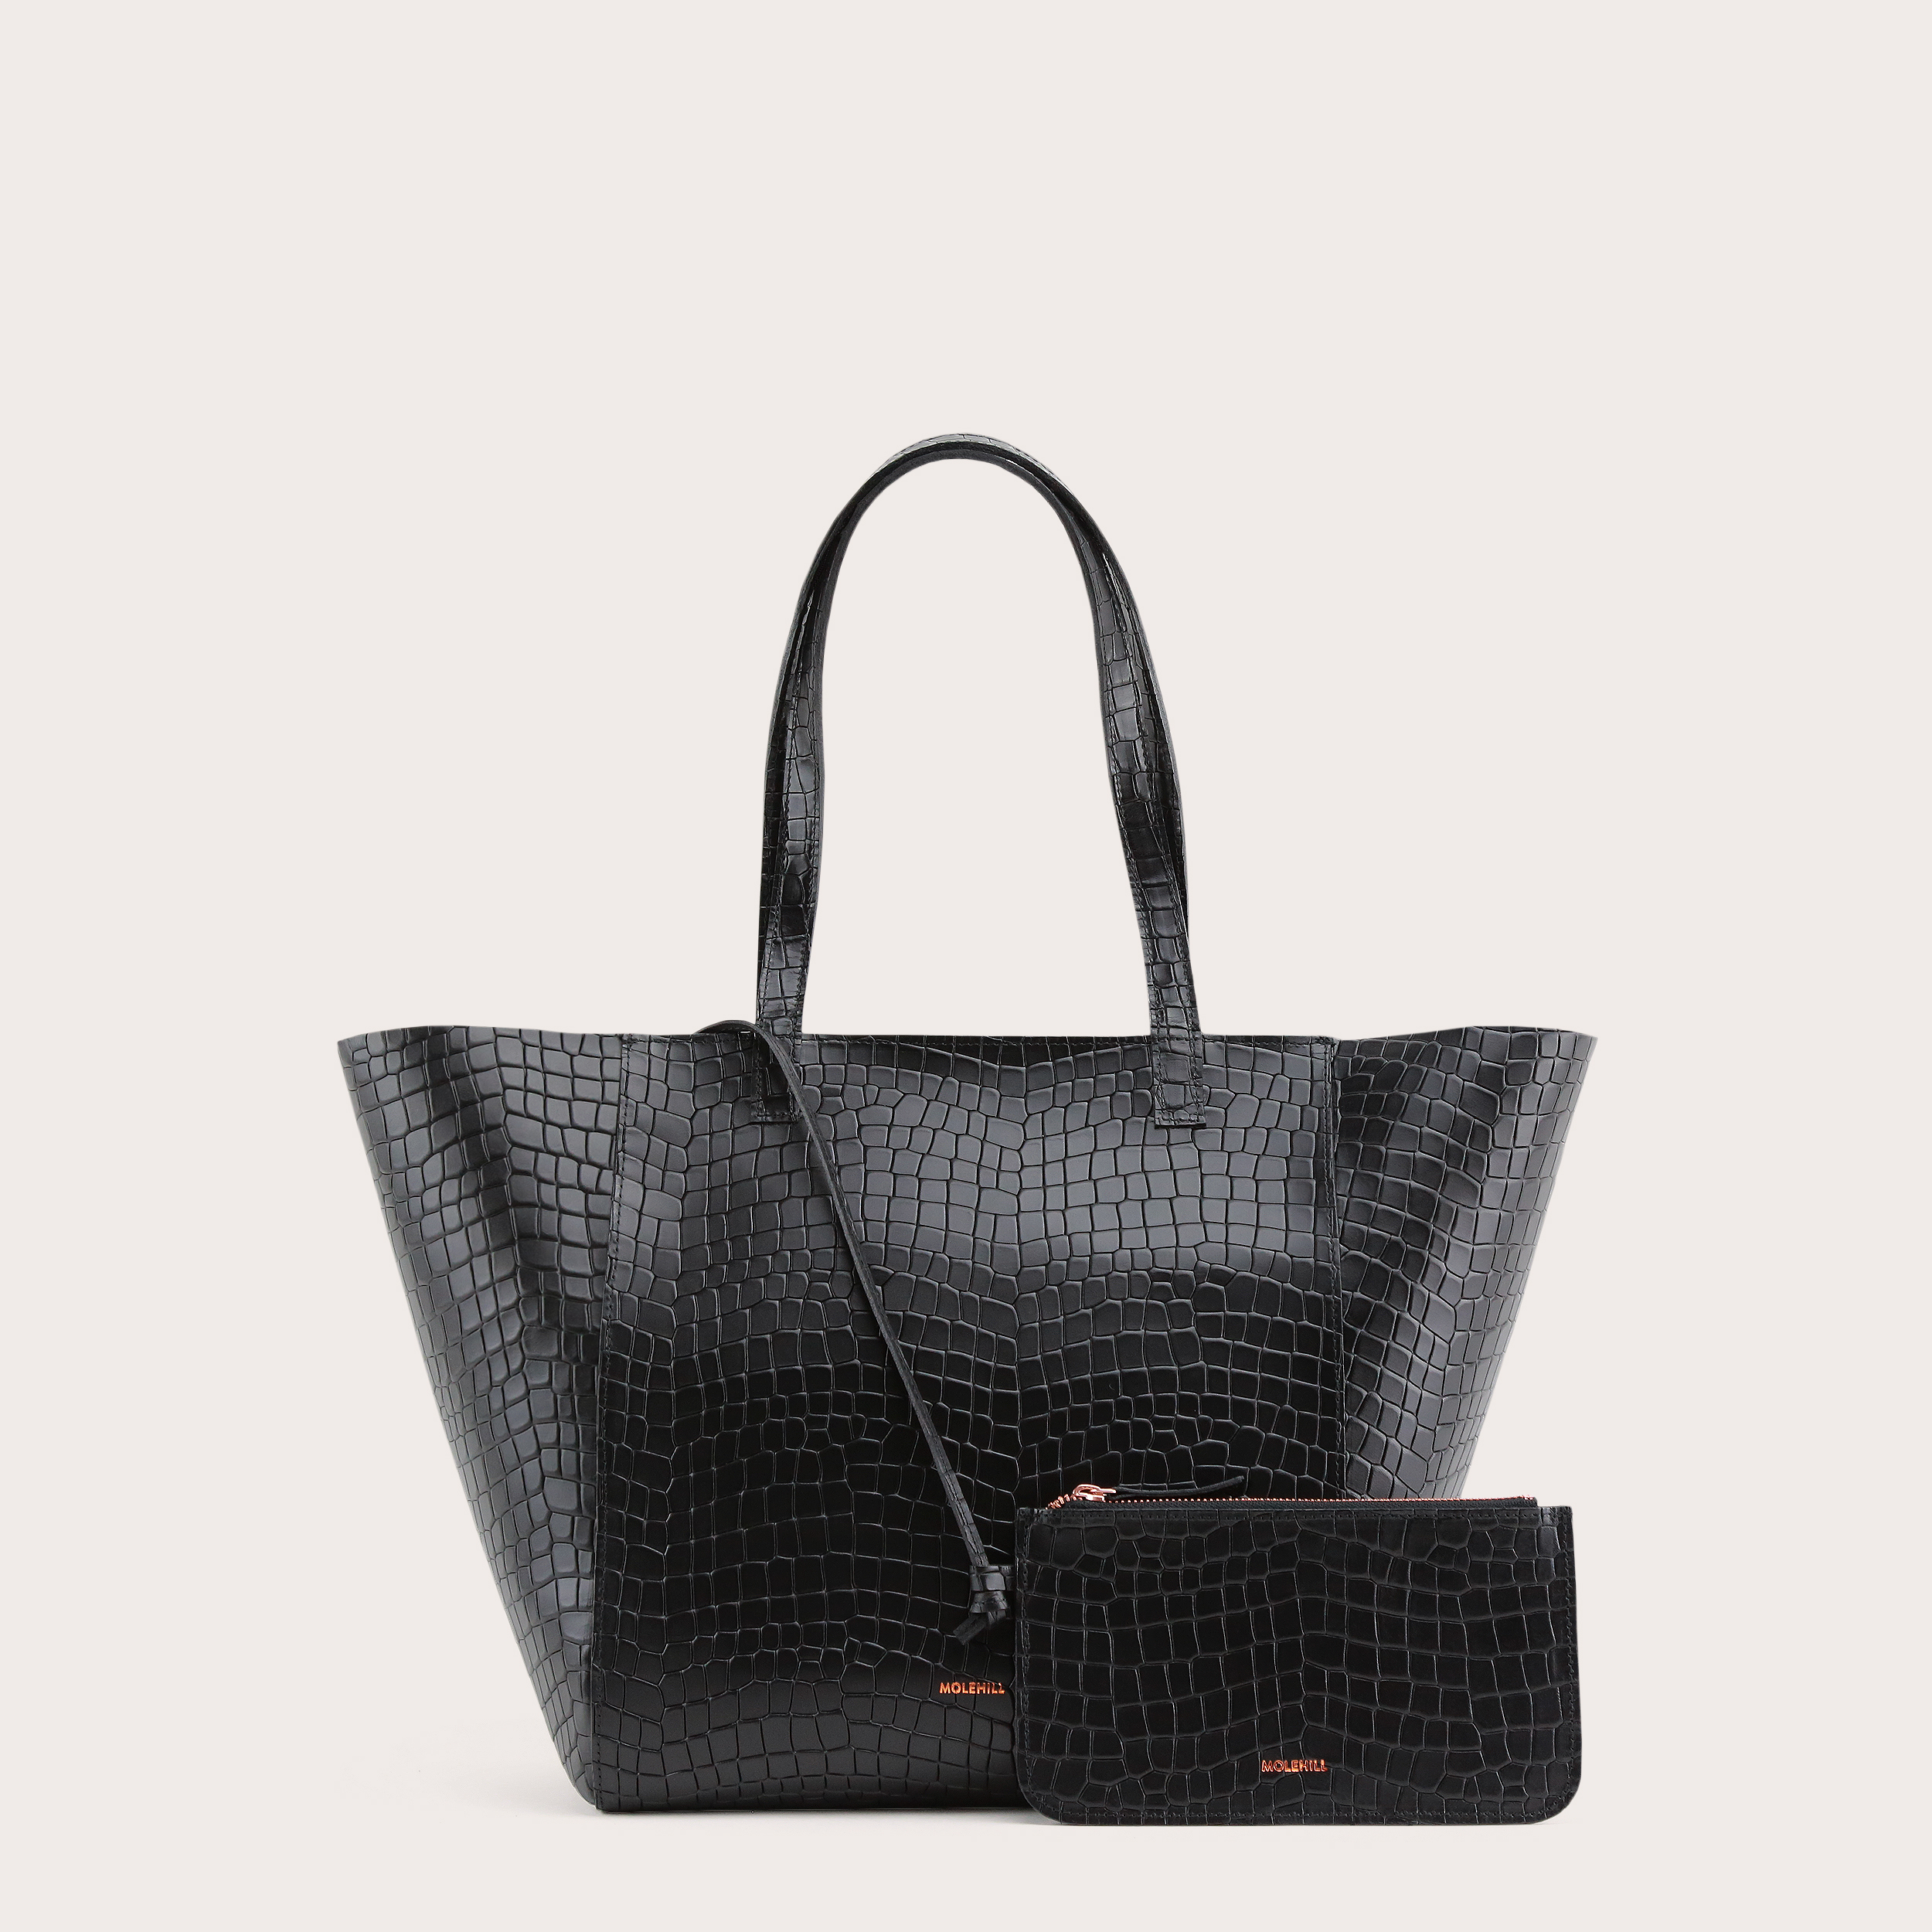 Torba ESTE Medium Zip Shopper Bag Croco Black 2